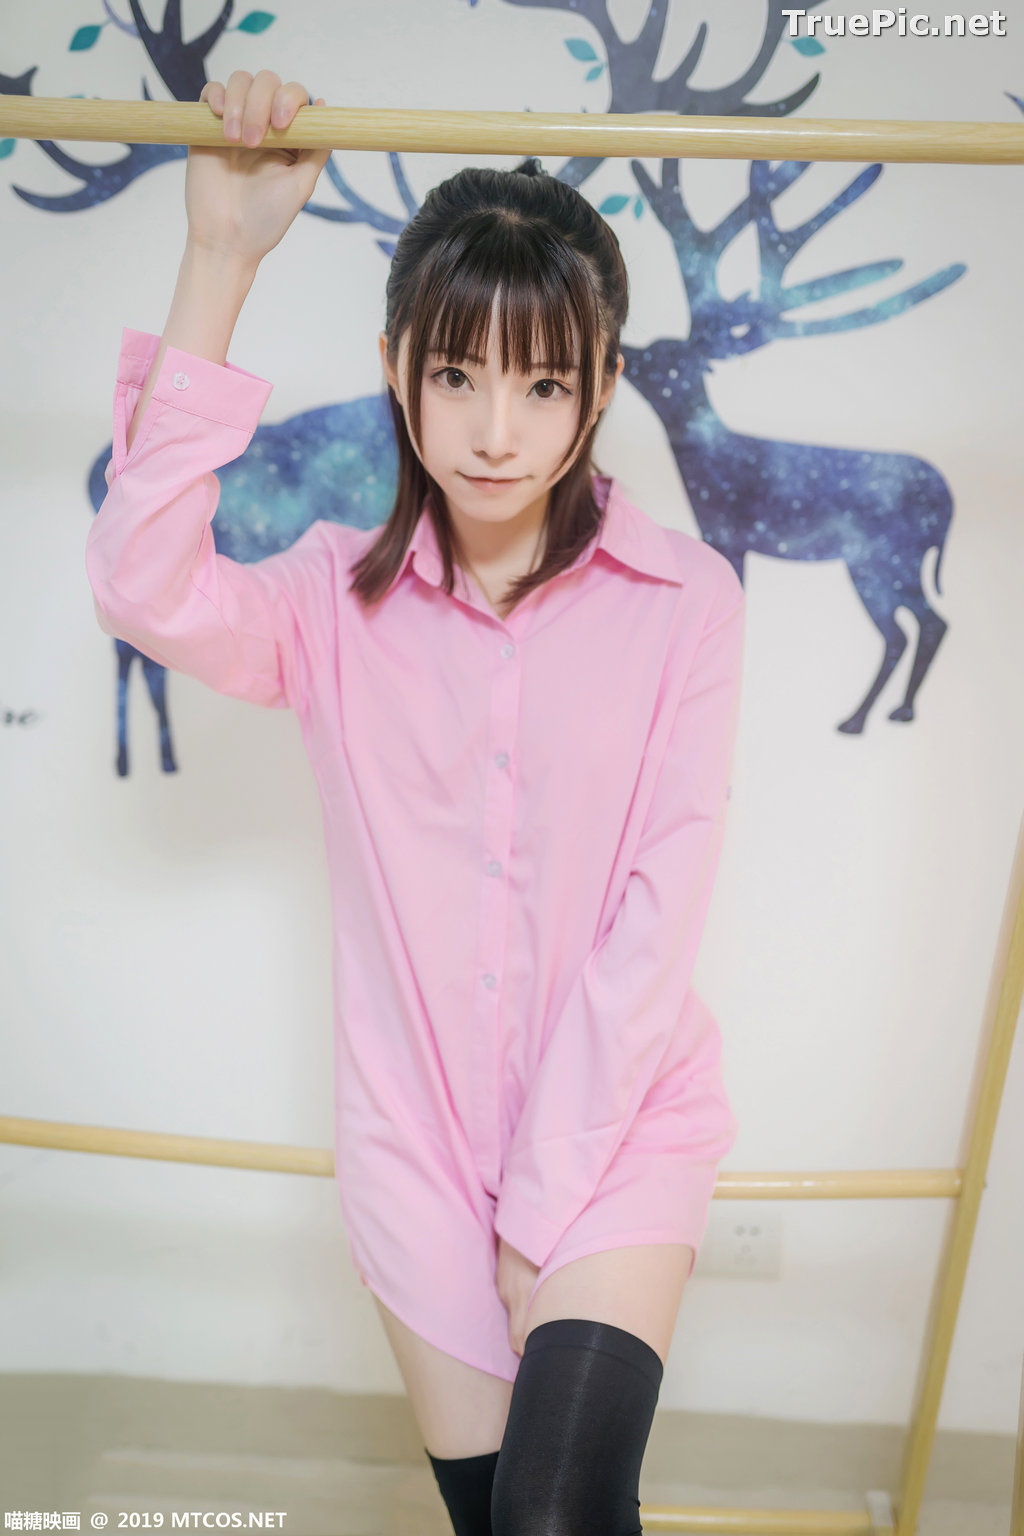 Image [MTCos] 喵糖映画 Vol.022 – Chinese Model – Pink Shirt and Black Stockings - TruePic.net - Picture-5